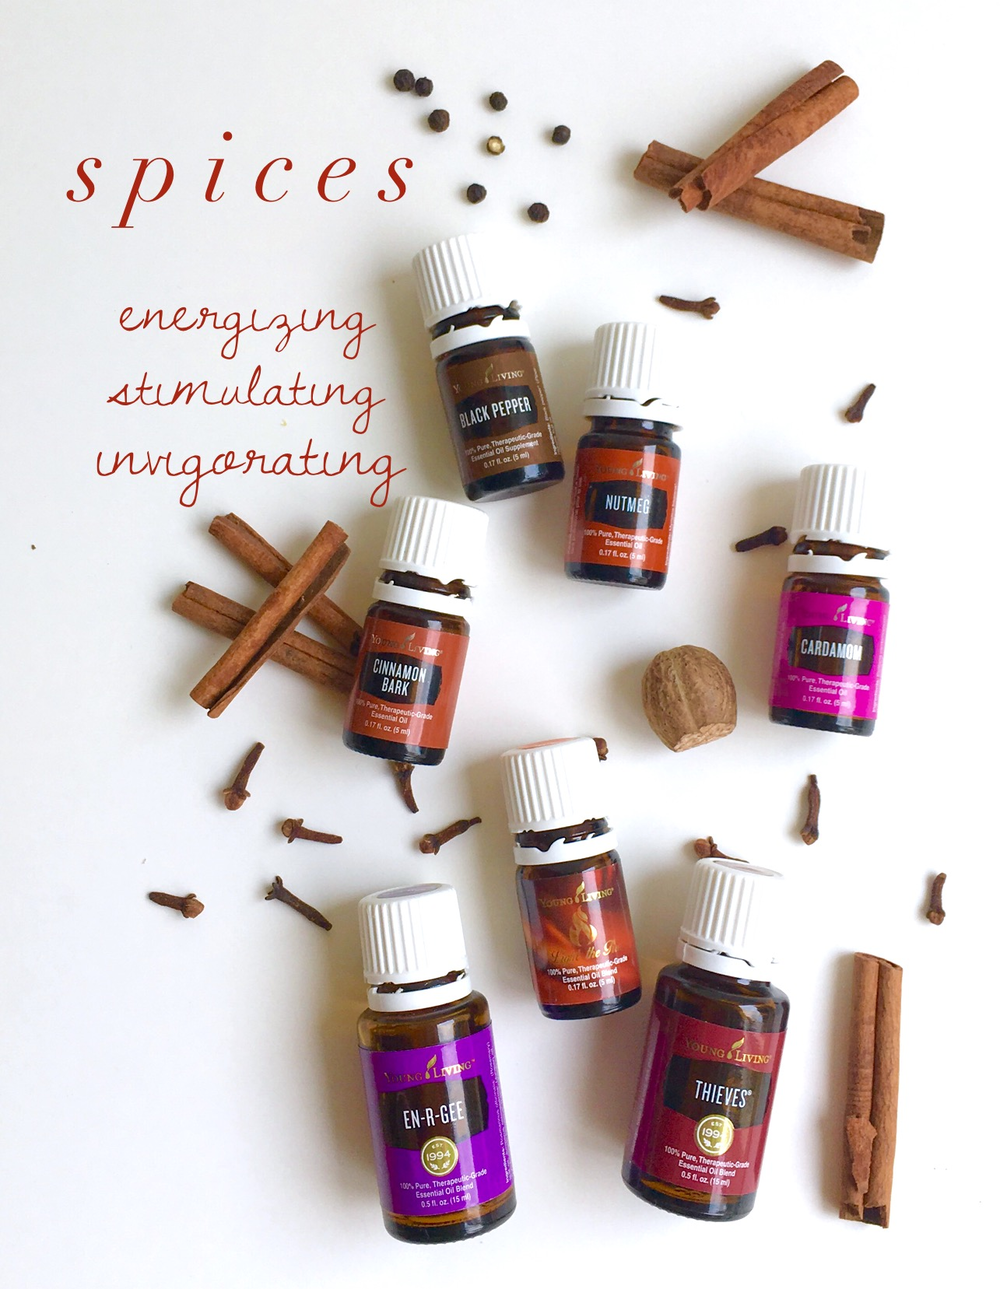 Cinnamon Bark, Black Pepper, Nutmeg, Clove, and Cardamom are spice oils. Light the Fire, En-R-Gee, and Thieves are great blends of spices.